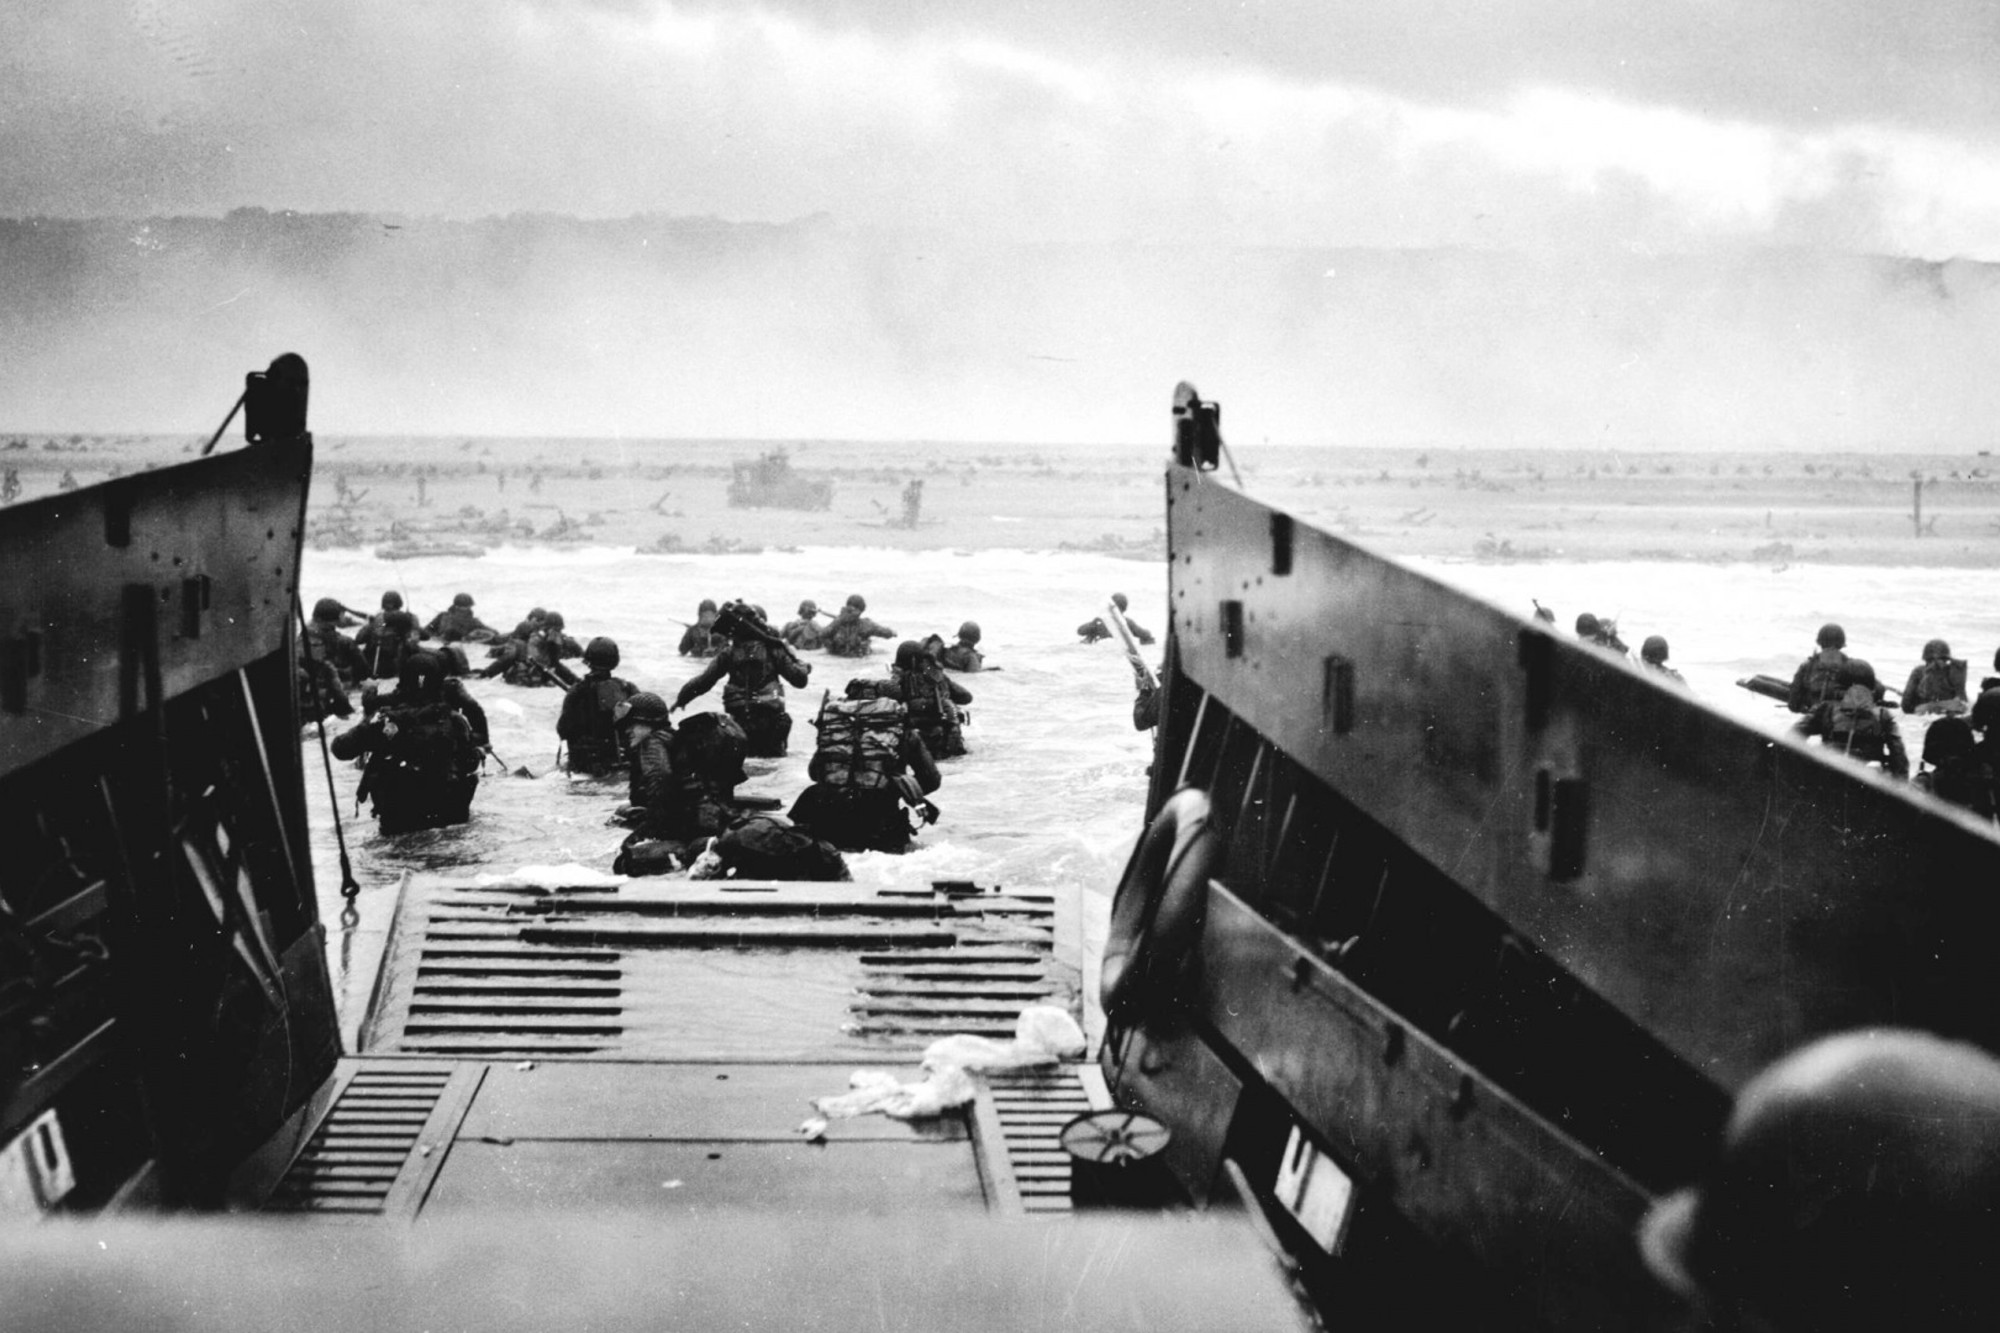 invasion of normandy Five facts you may not know about the normandy invasion: bloody a company for most the men of a company, 1st battalion, 116th infantry, normandy was their first taste of combat.